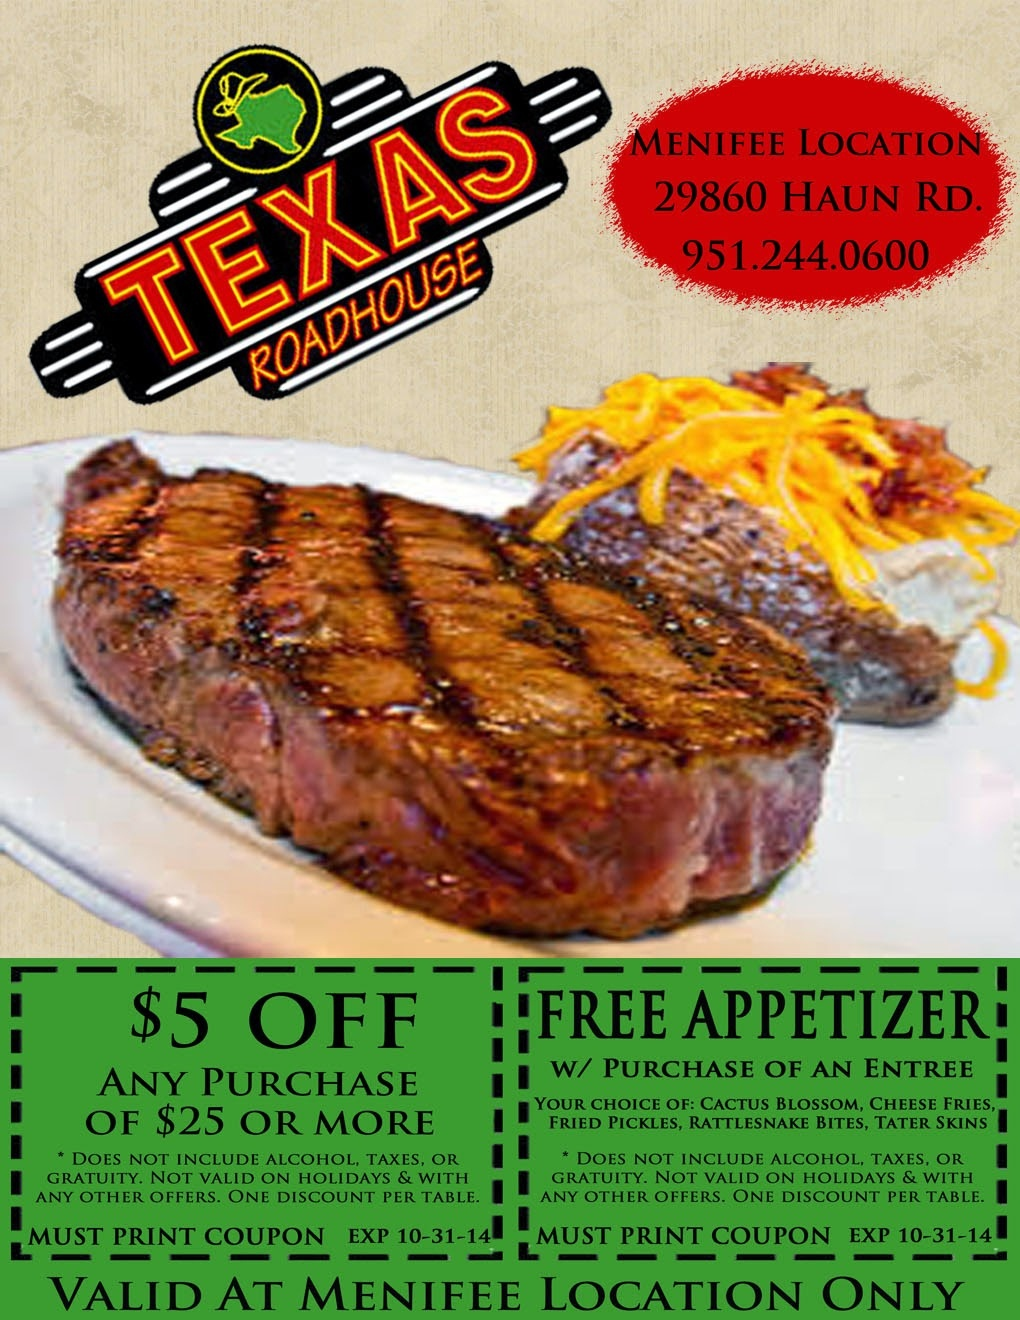 Zumiez Coupons Printable 2018 : Harcourt Outlines Coupons - Texas Roadhouse Free Appetizer Printable Coupon 2015